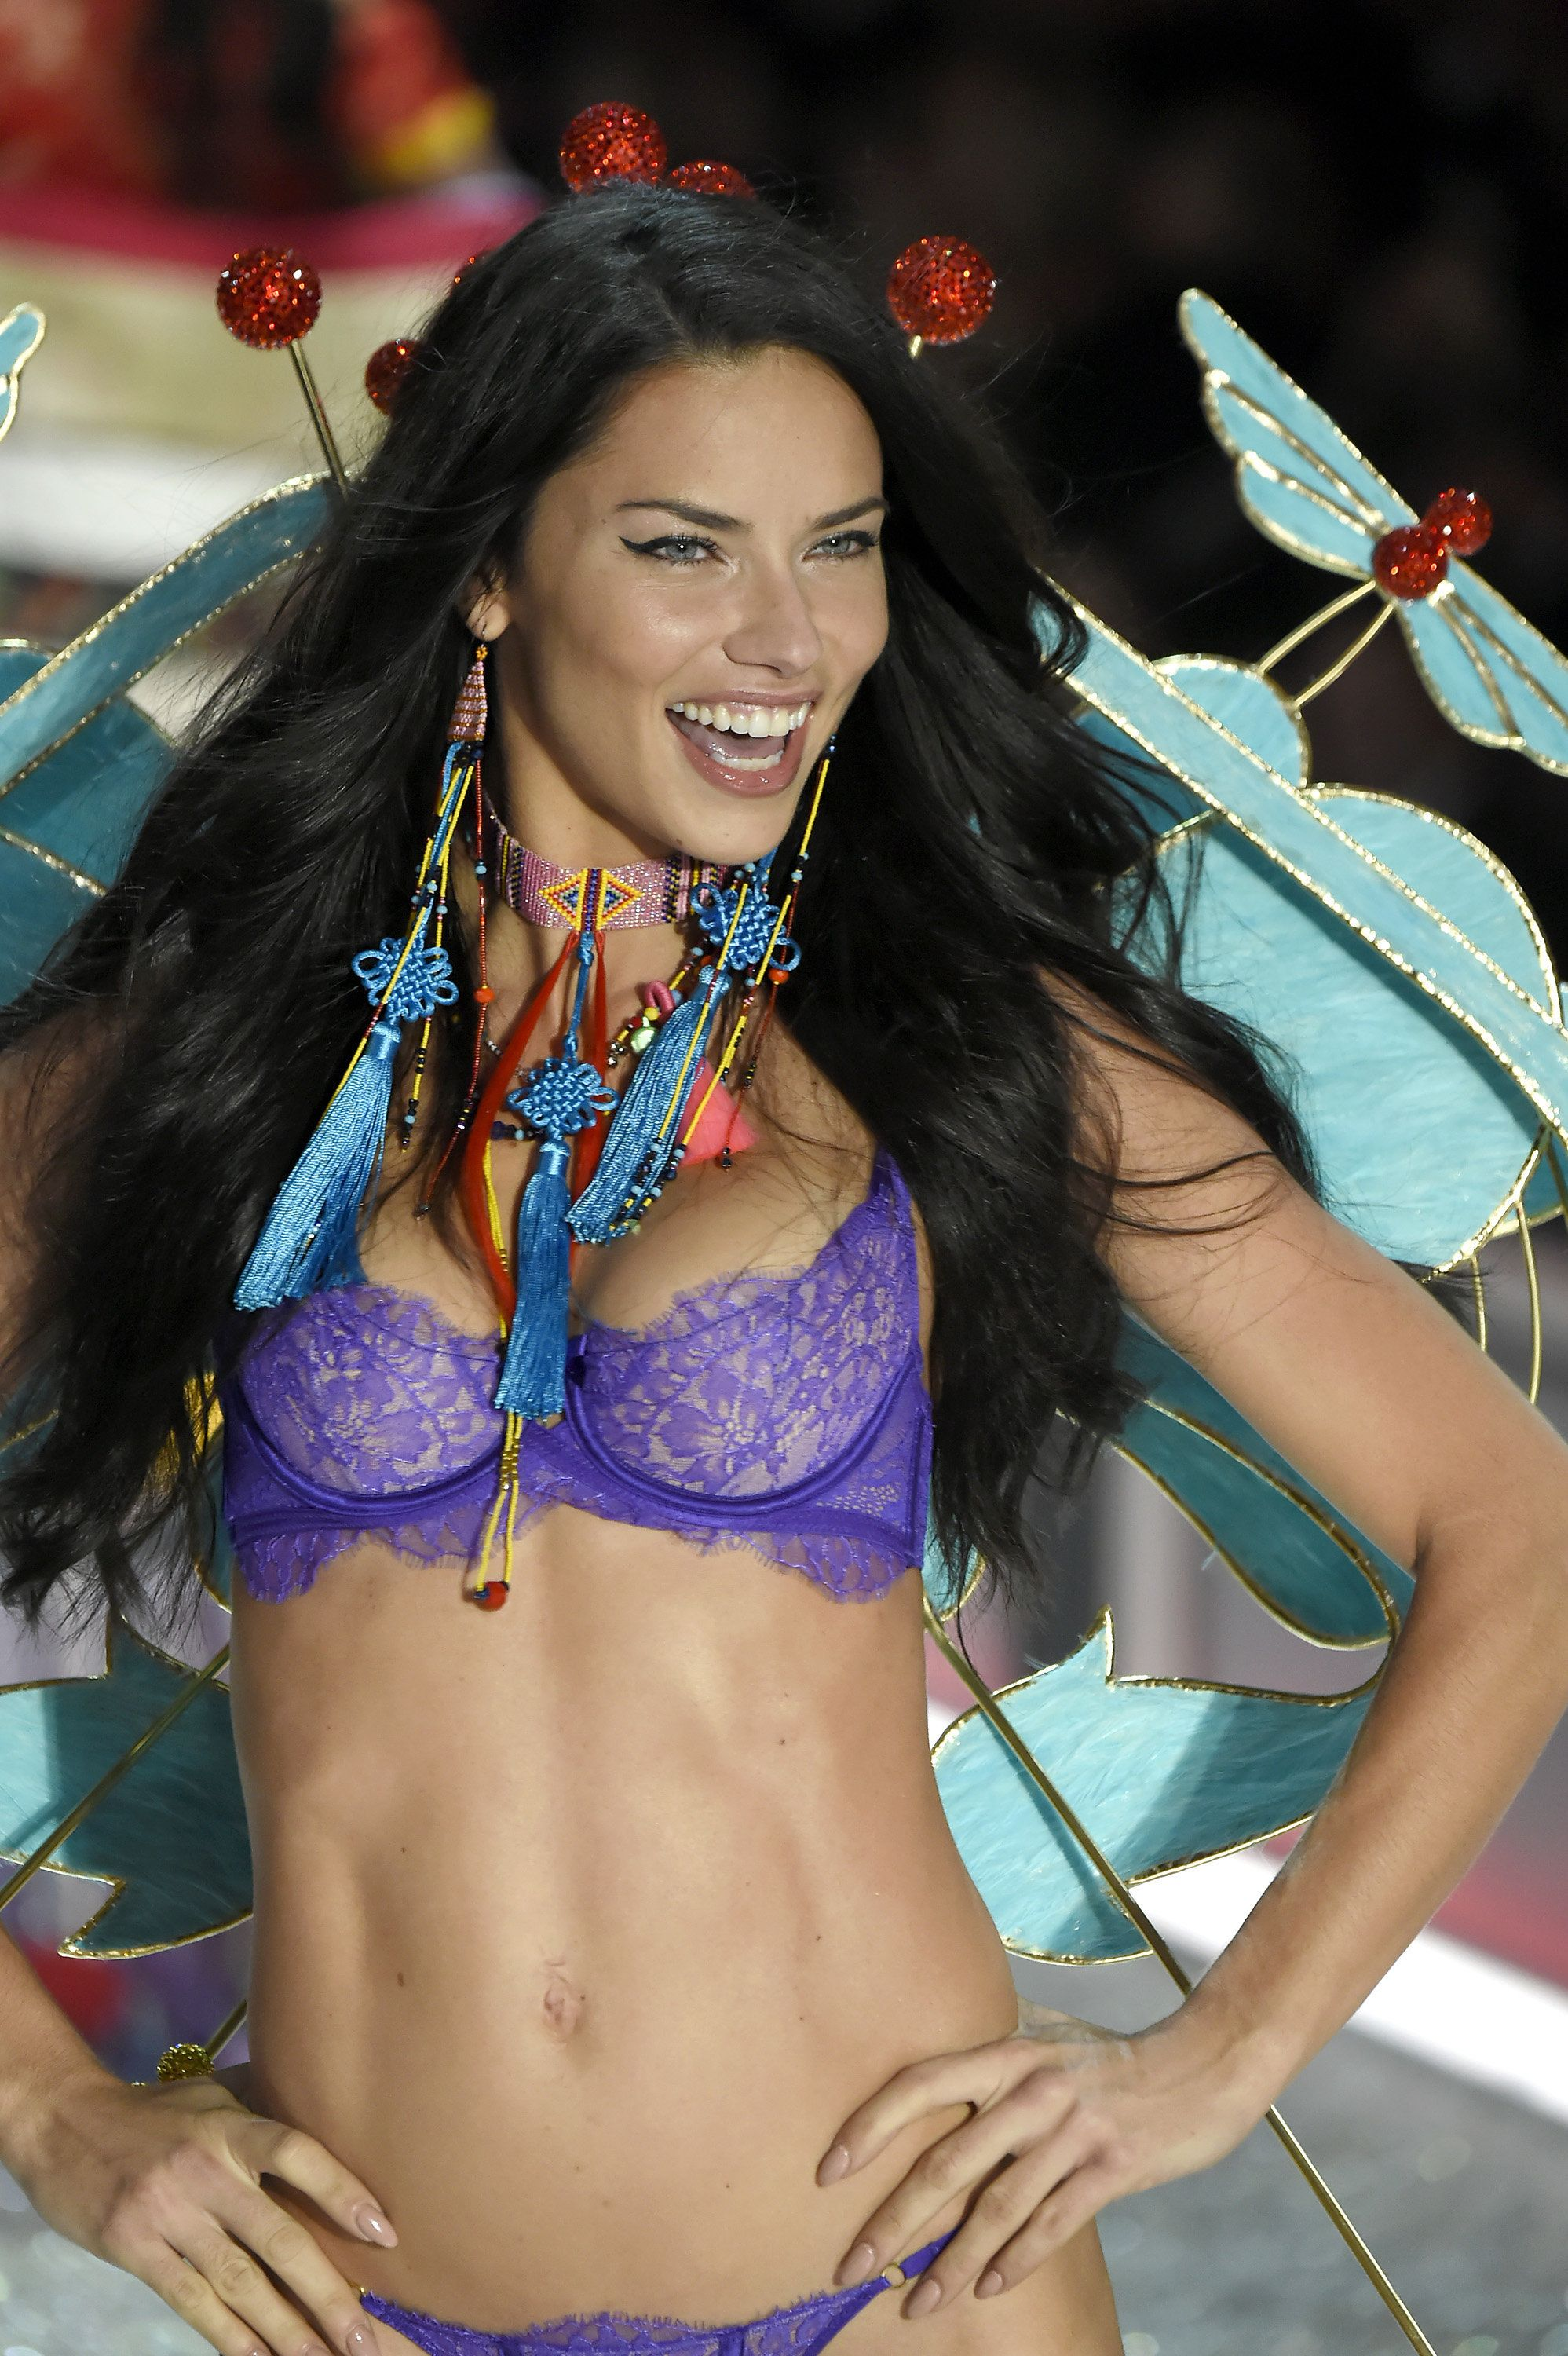 PARIS, FRANCE - NOVEMBER 30:  Adriana Lima walks the runway during the Victoria's Secret Fashion Show on November 30, 2016 in Paris, France.  (Photo by Kristy Sparow/WireImage)